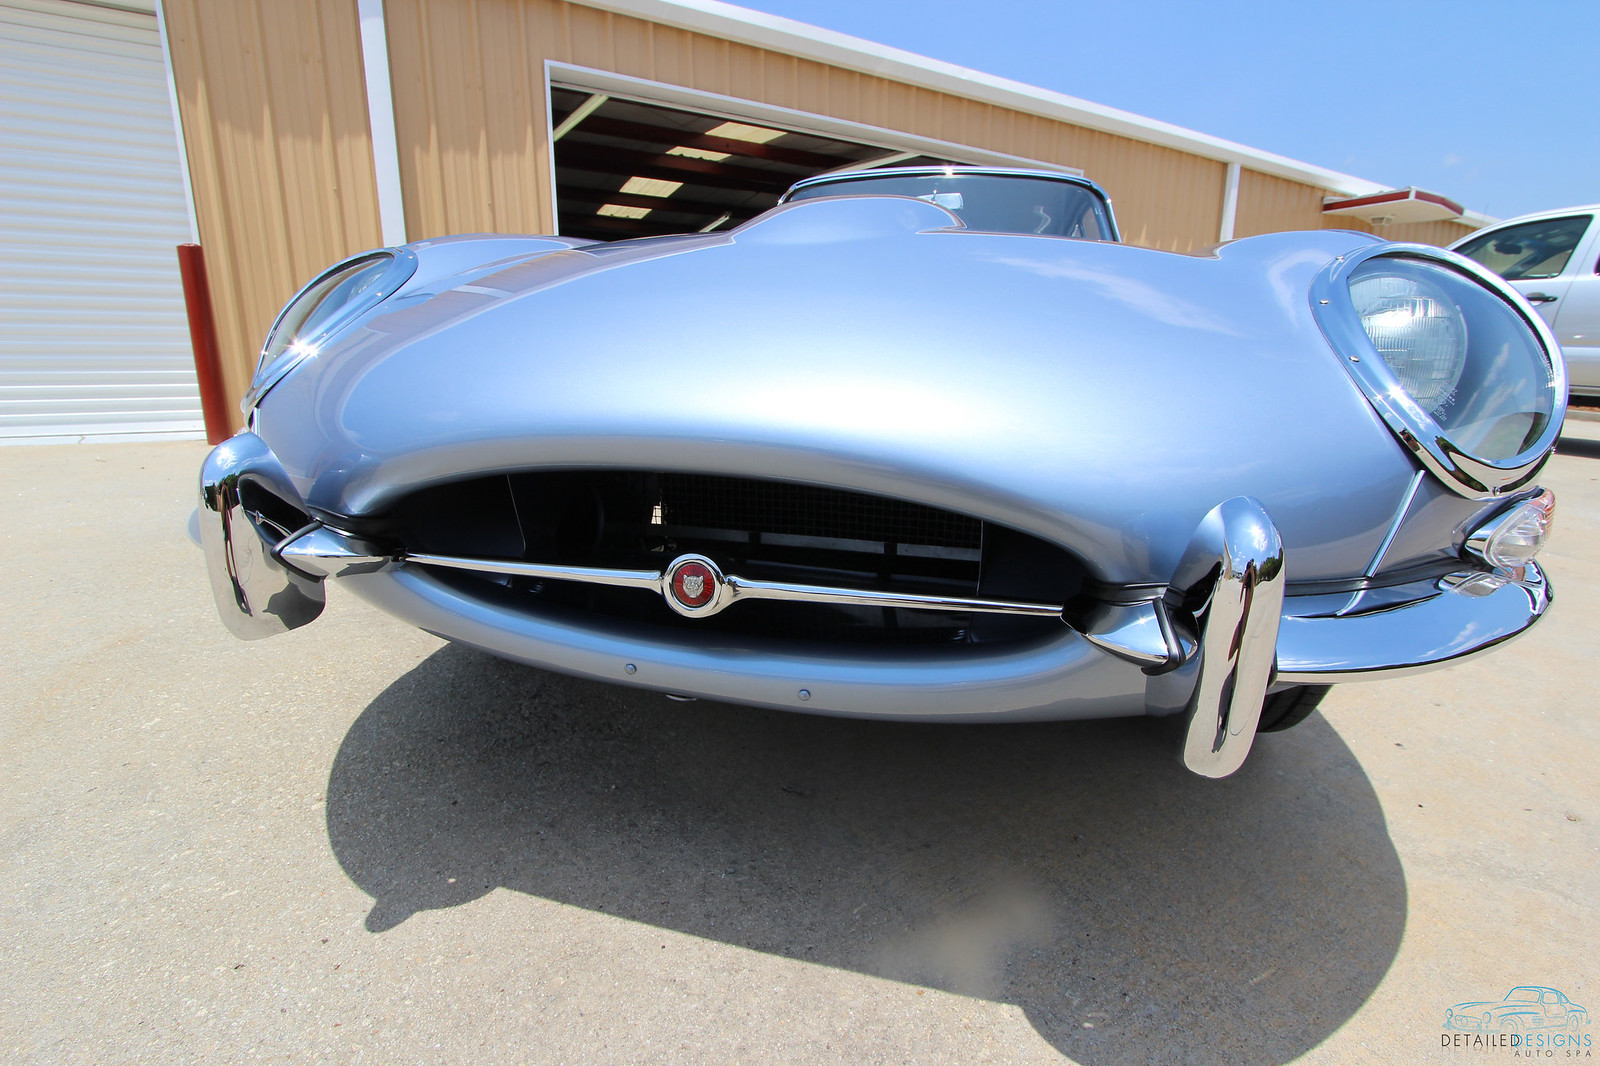 Jaguar E-type show car detailing Detailed Designs Auto Spa